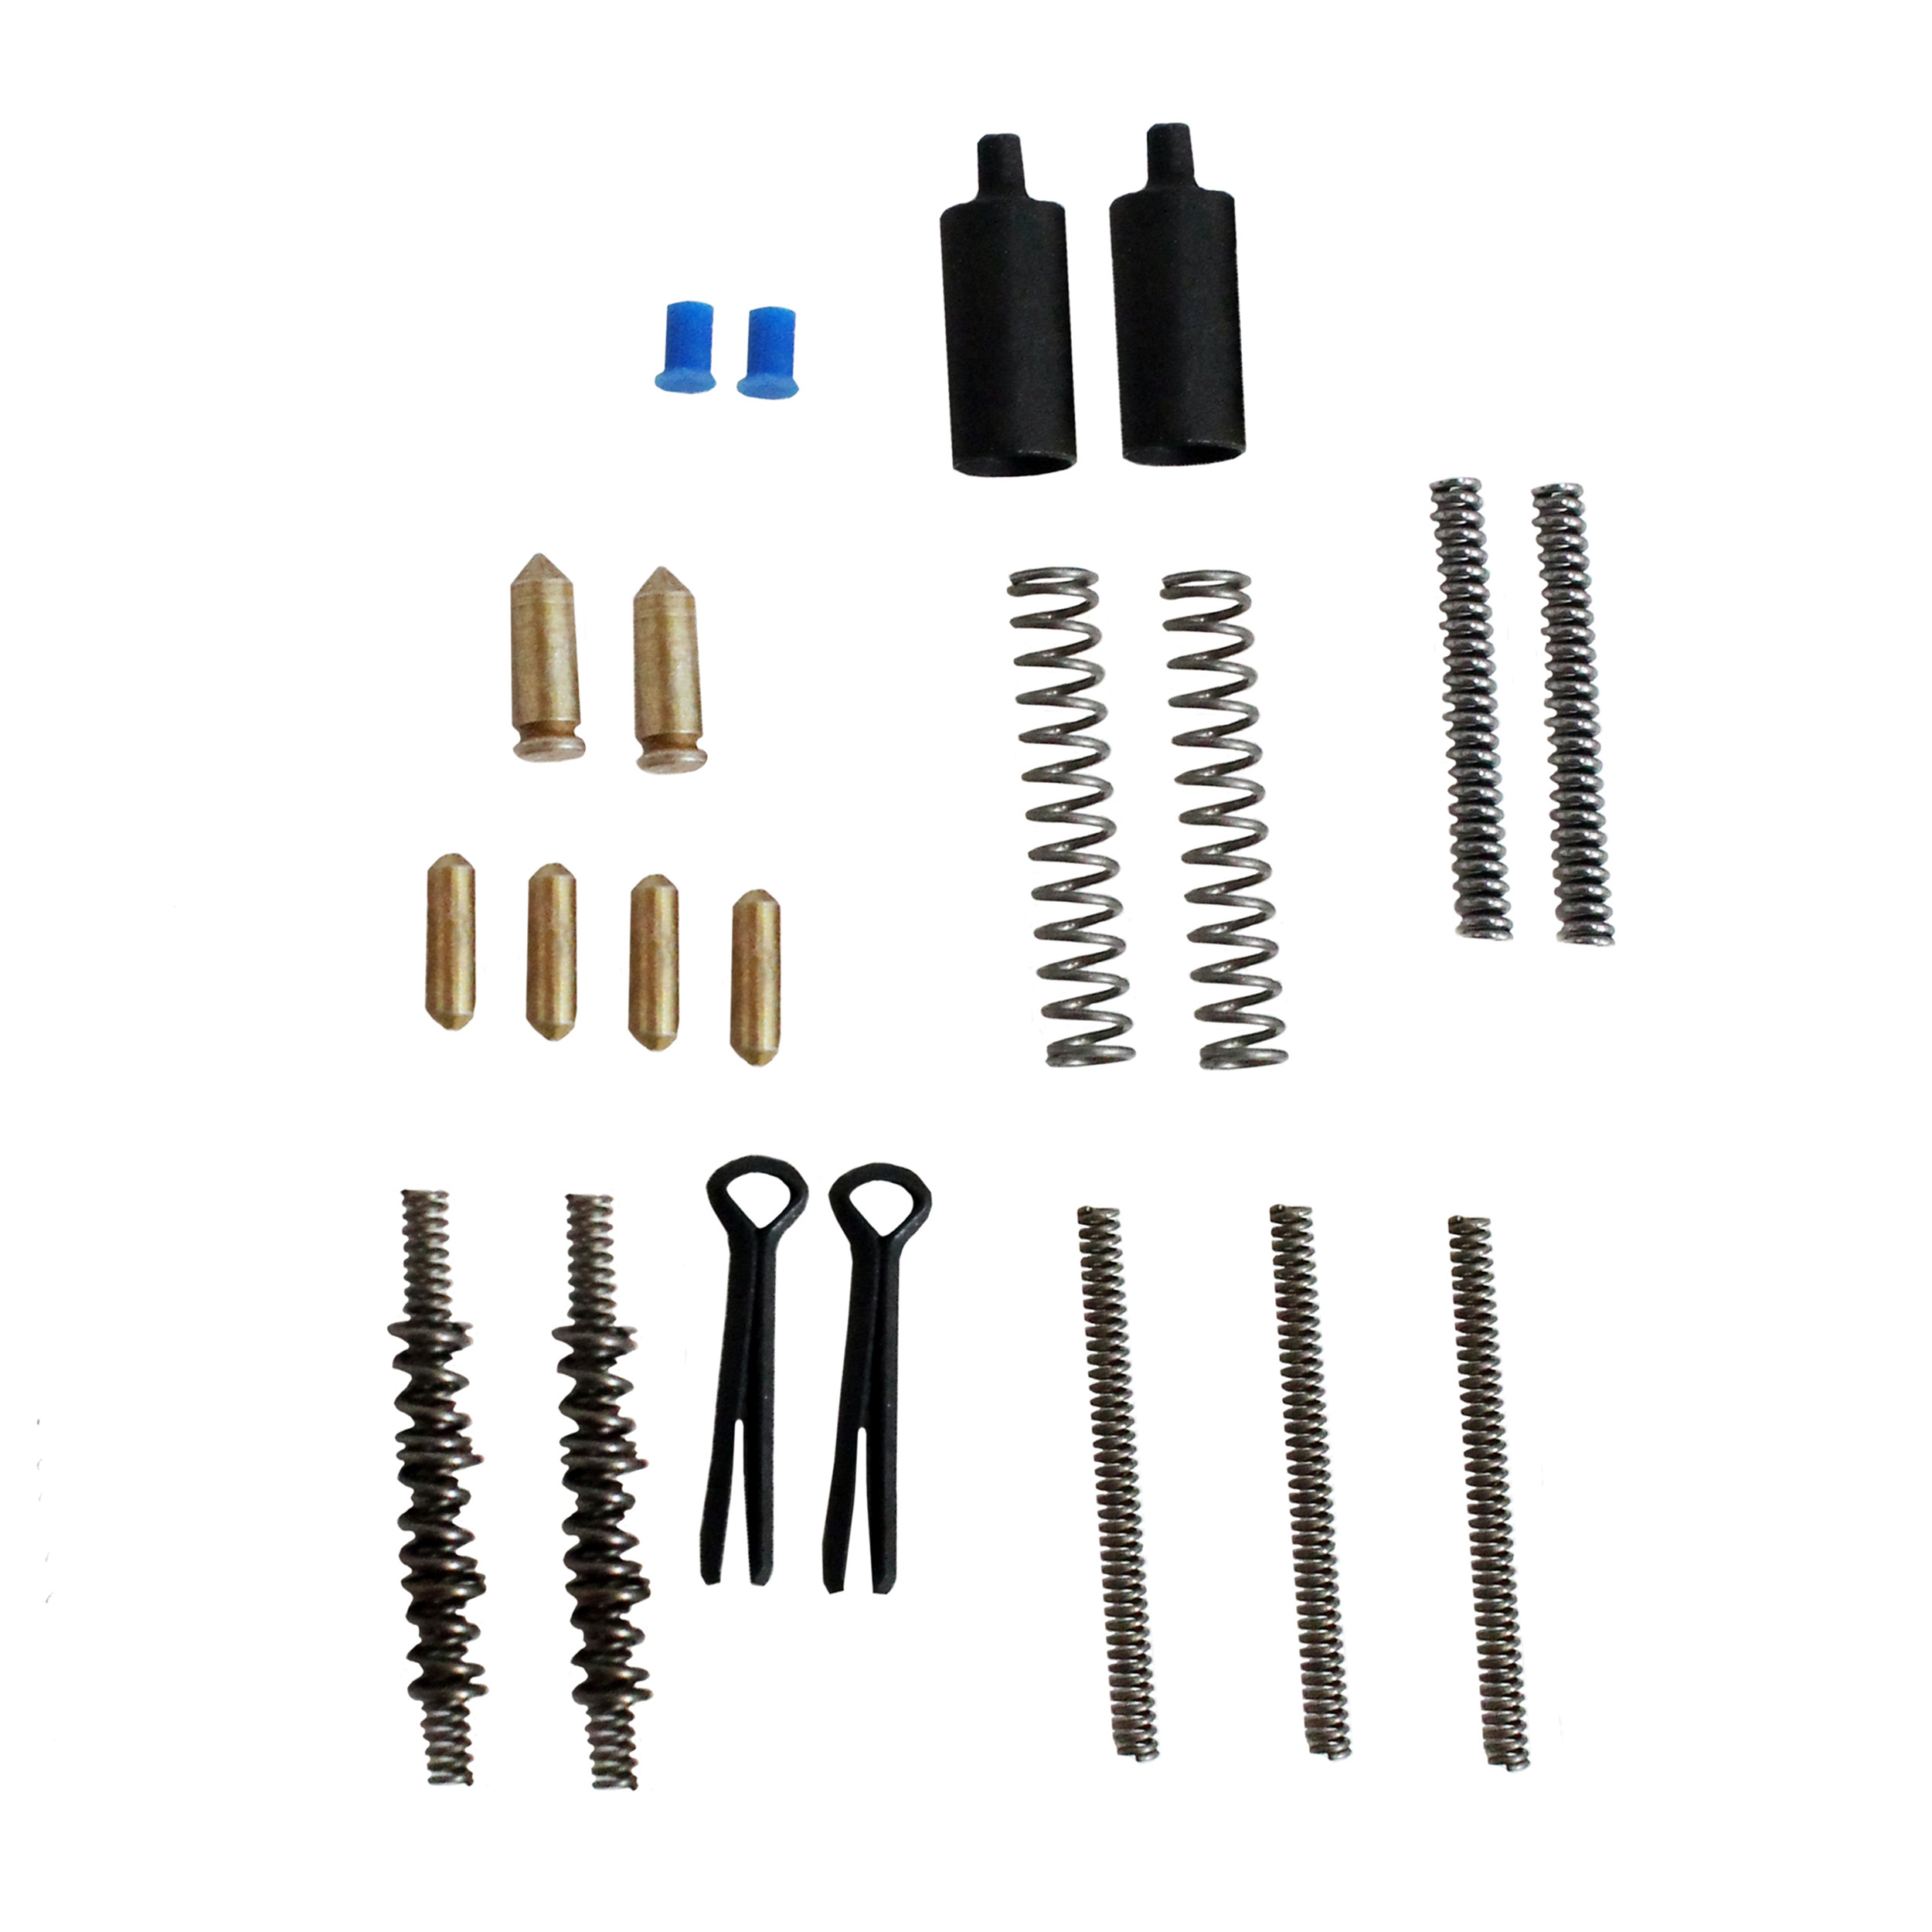 Remington Accessories XM15 Kit Lost Parts